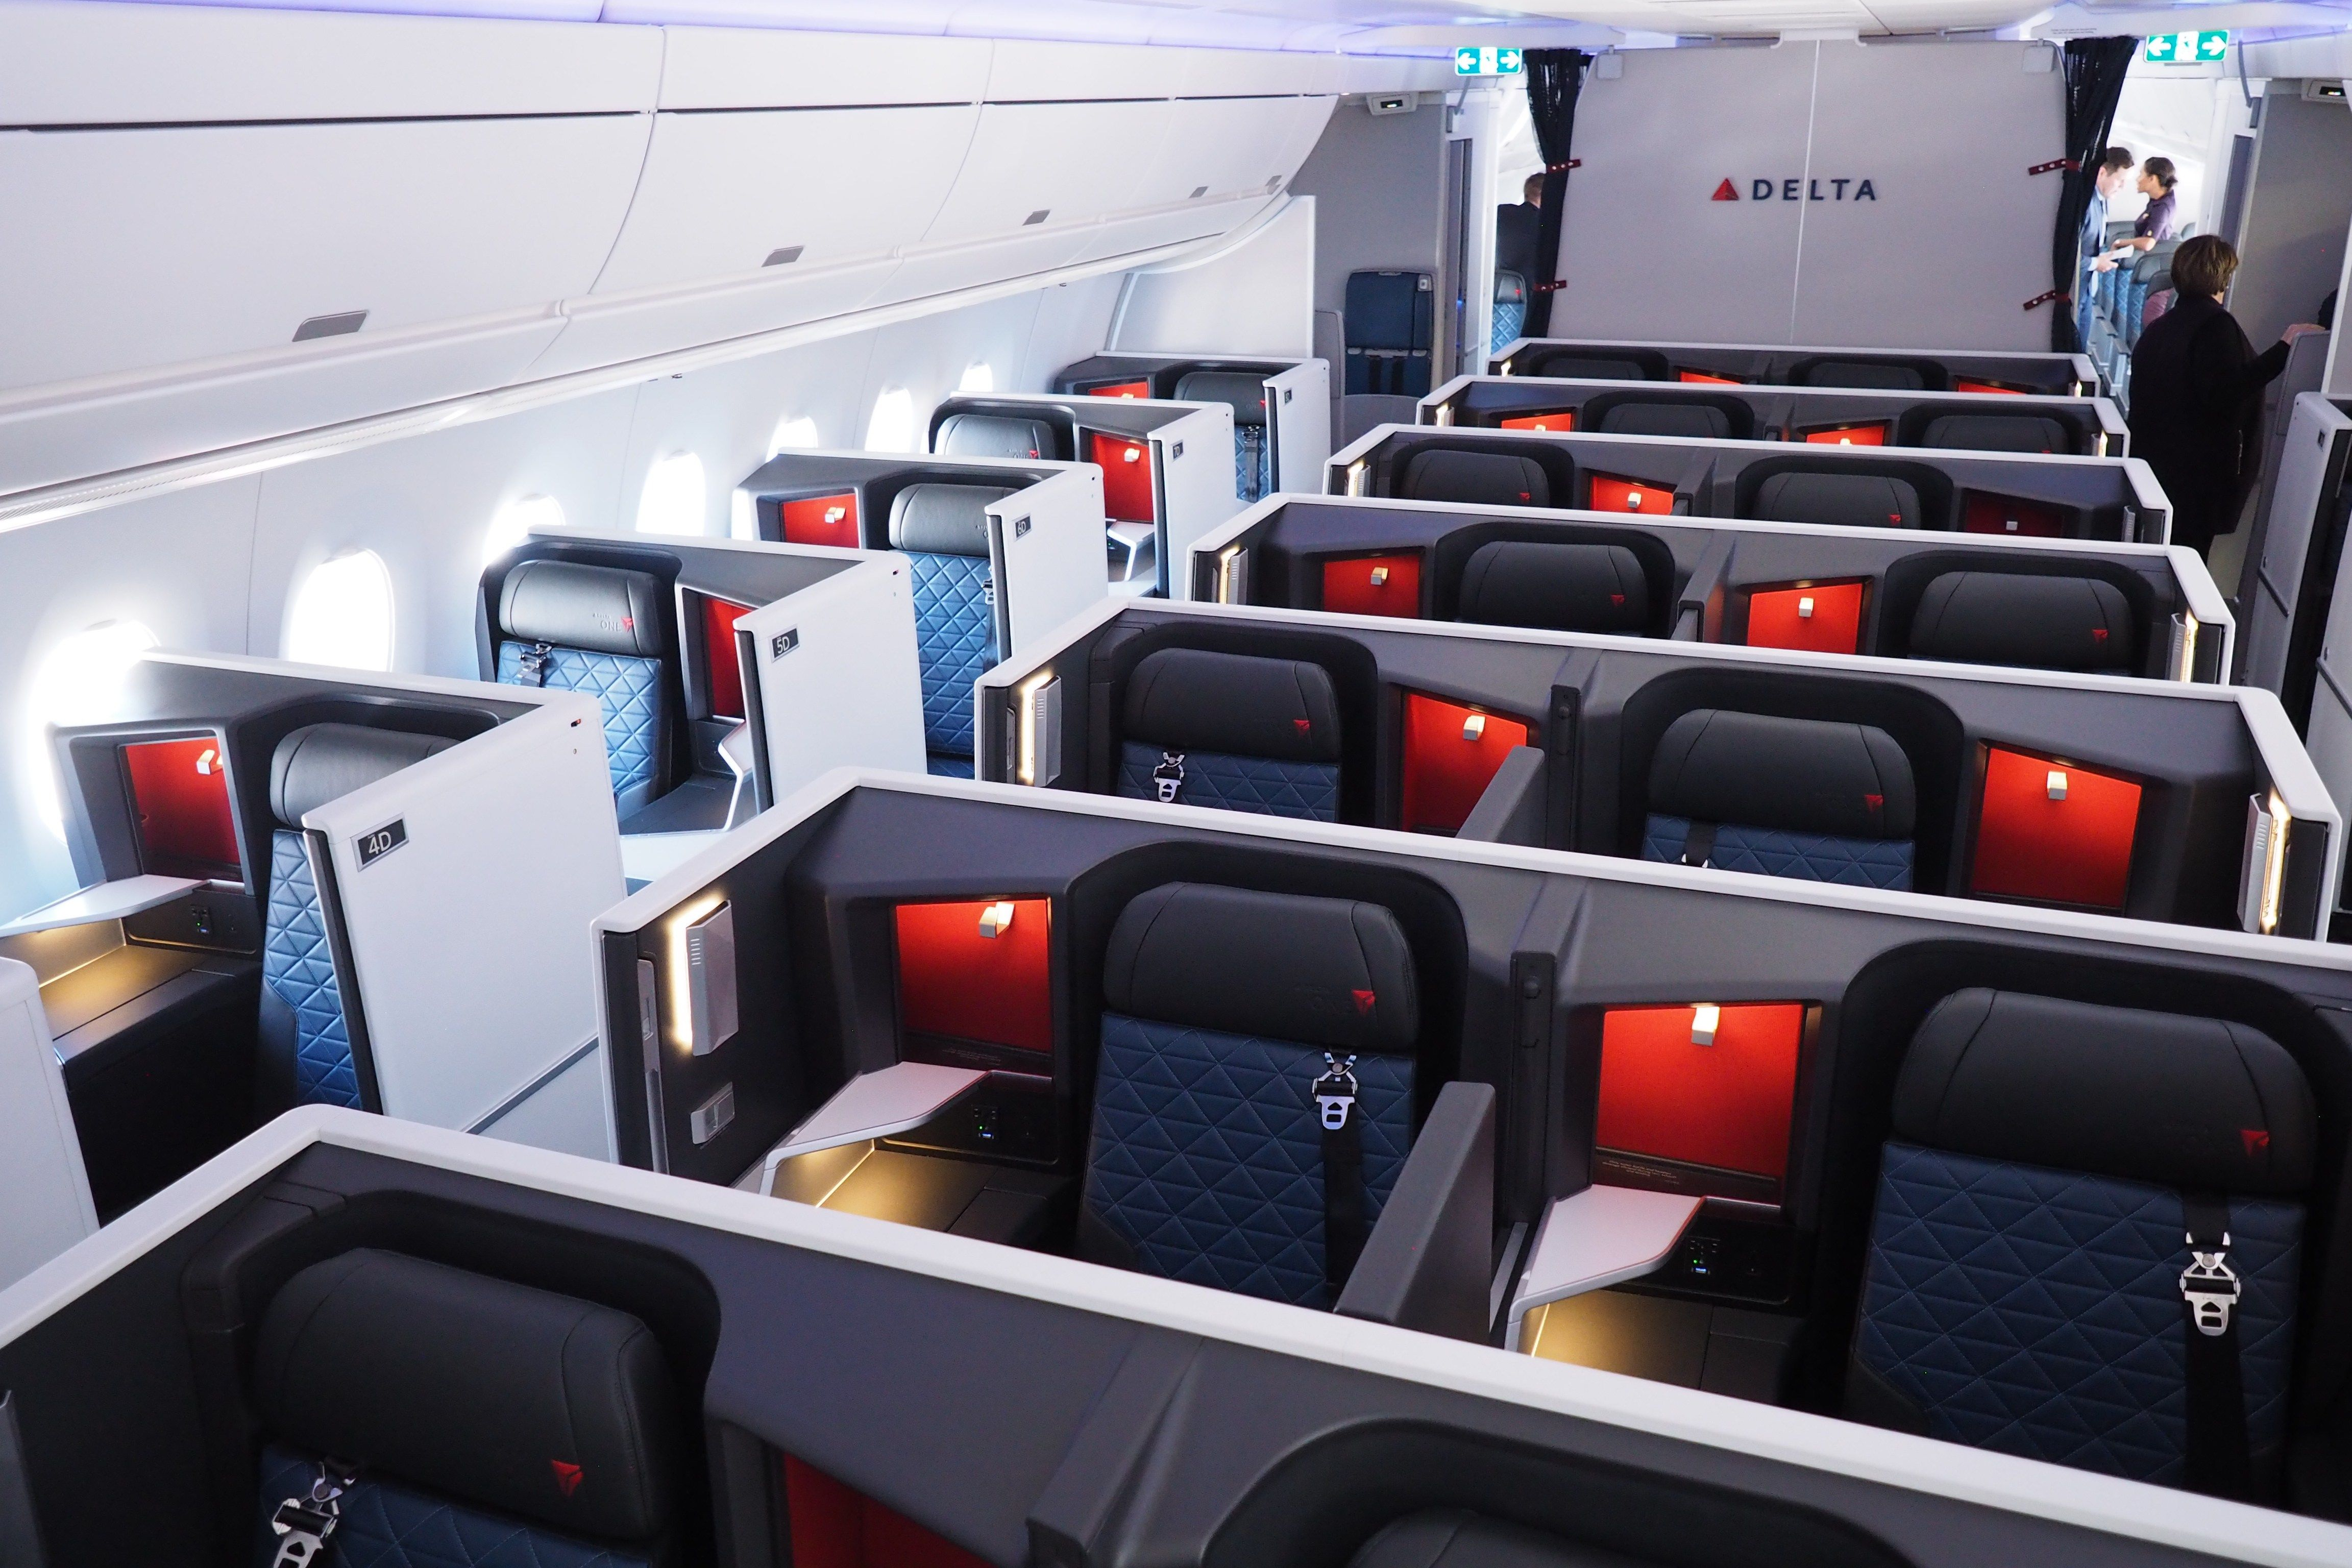 If youre looking to book a delta award flight dont